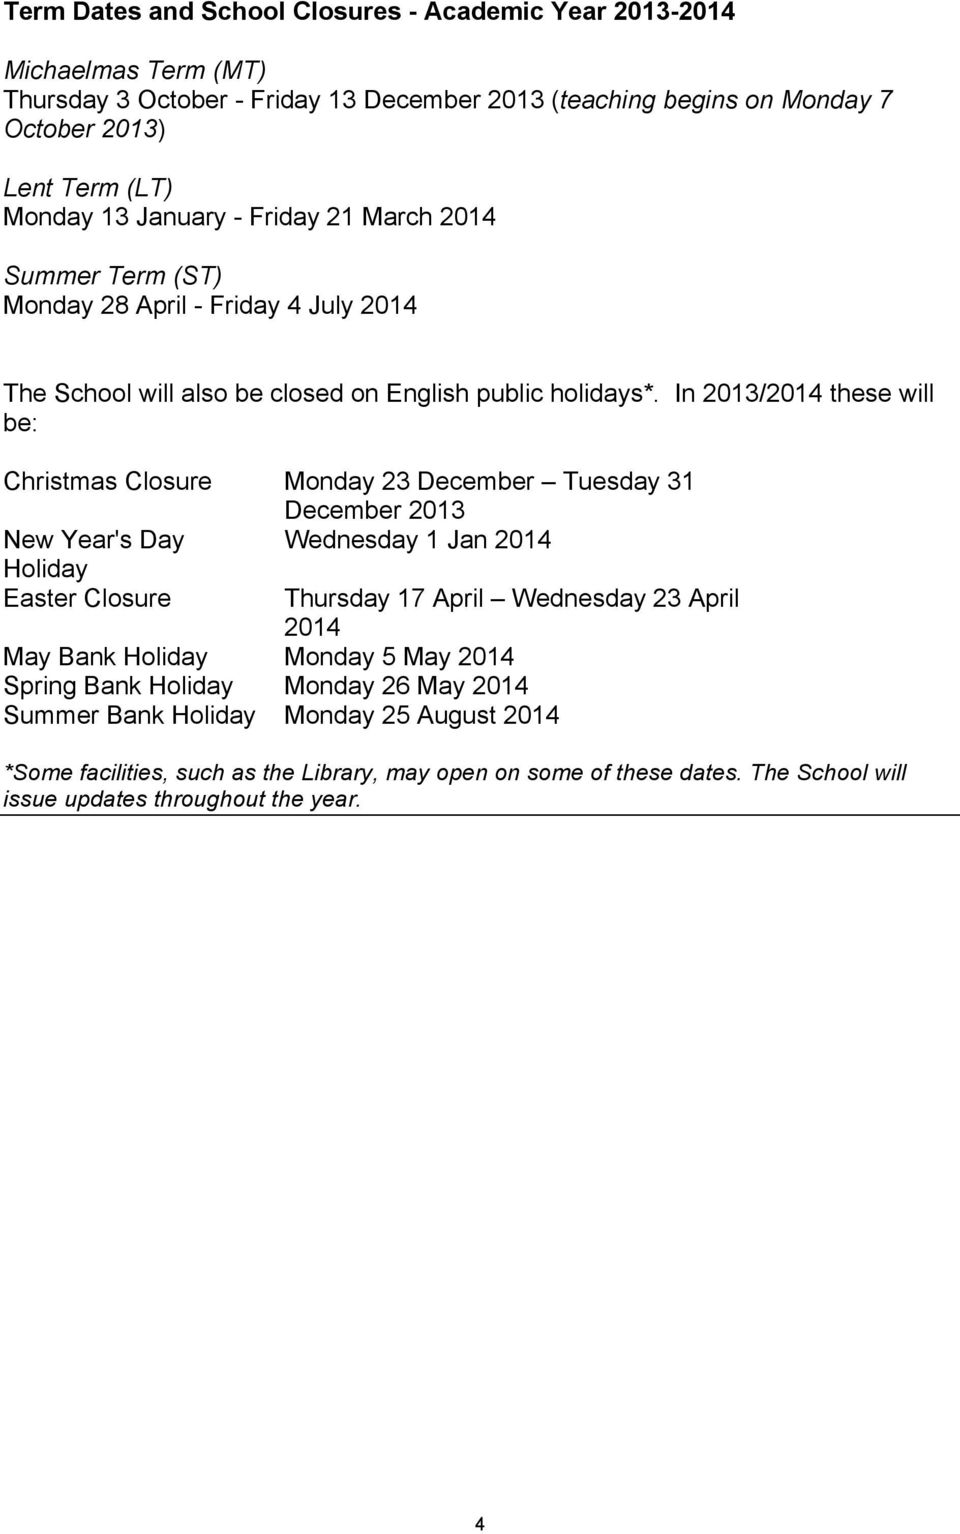 In 2013/2014 these will be: Christmas Closure Monday 23 December Tuesday 31 December 2013 New Year's Day Wednesday 1 Jan 2014 Holiday Easter Closure Thursday 17 April Wednesday 23 April 2014